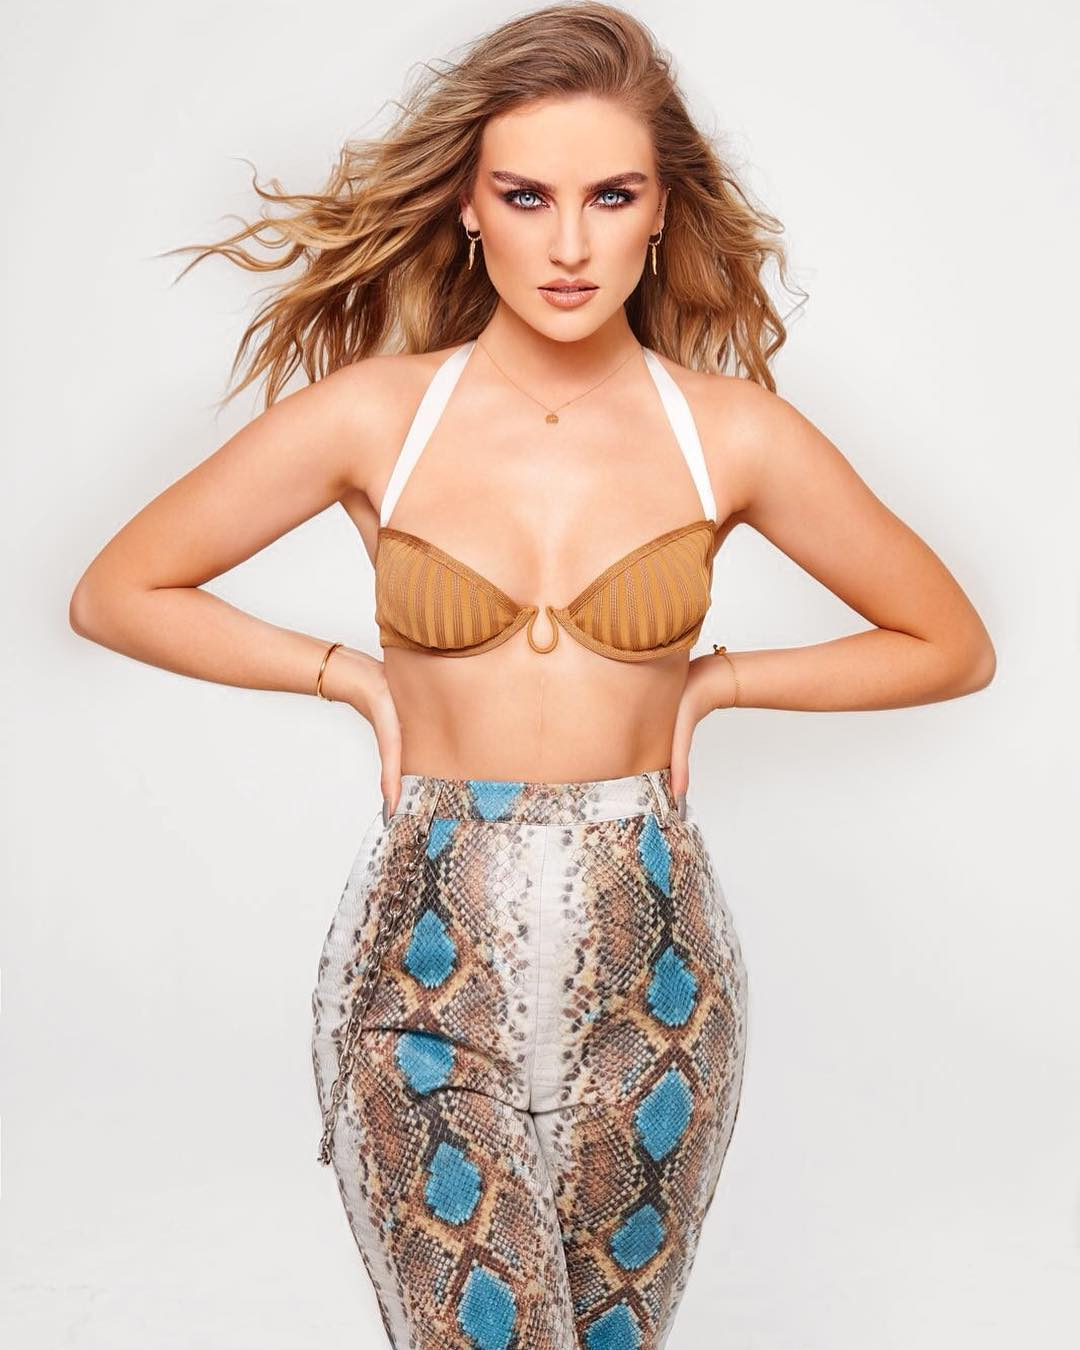 Hot Perrie Edwards nudes (49 photo), Tits, Leaked, Selfie, swimsuit 2019